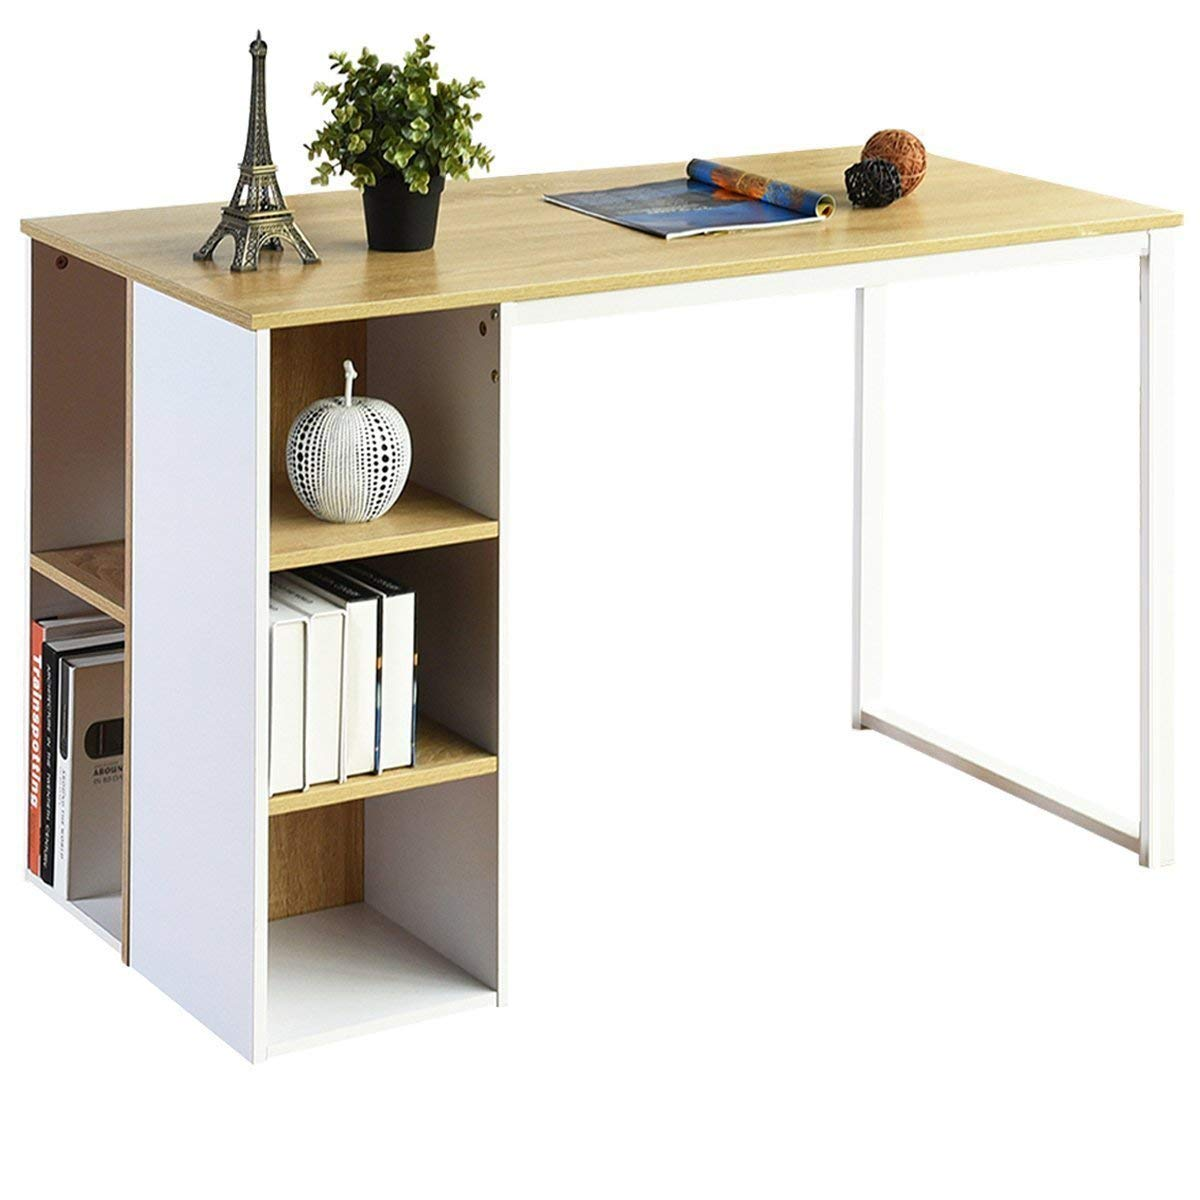 Computer Desk Office Writing Desk with 5 Side Shelves Large Study Table Modern Laptop Notebook Desk with Storage Wood Workstation Home Collection PC Organizers Metal Legs -Oak/White Coavas